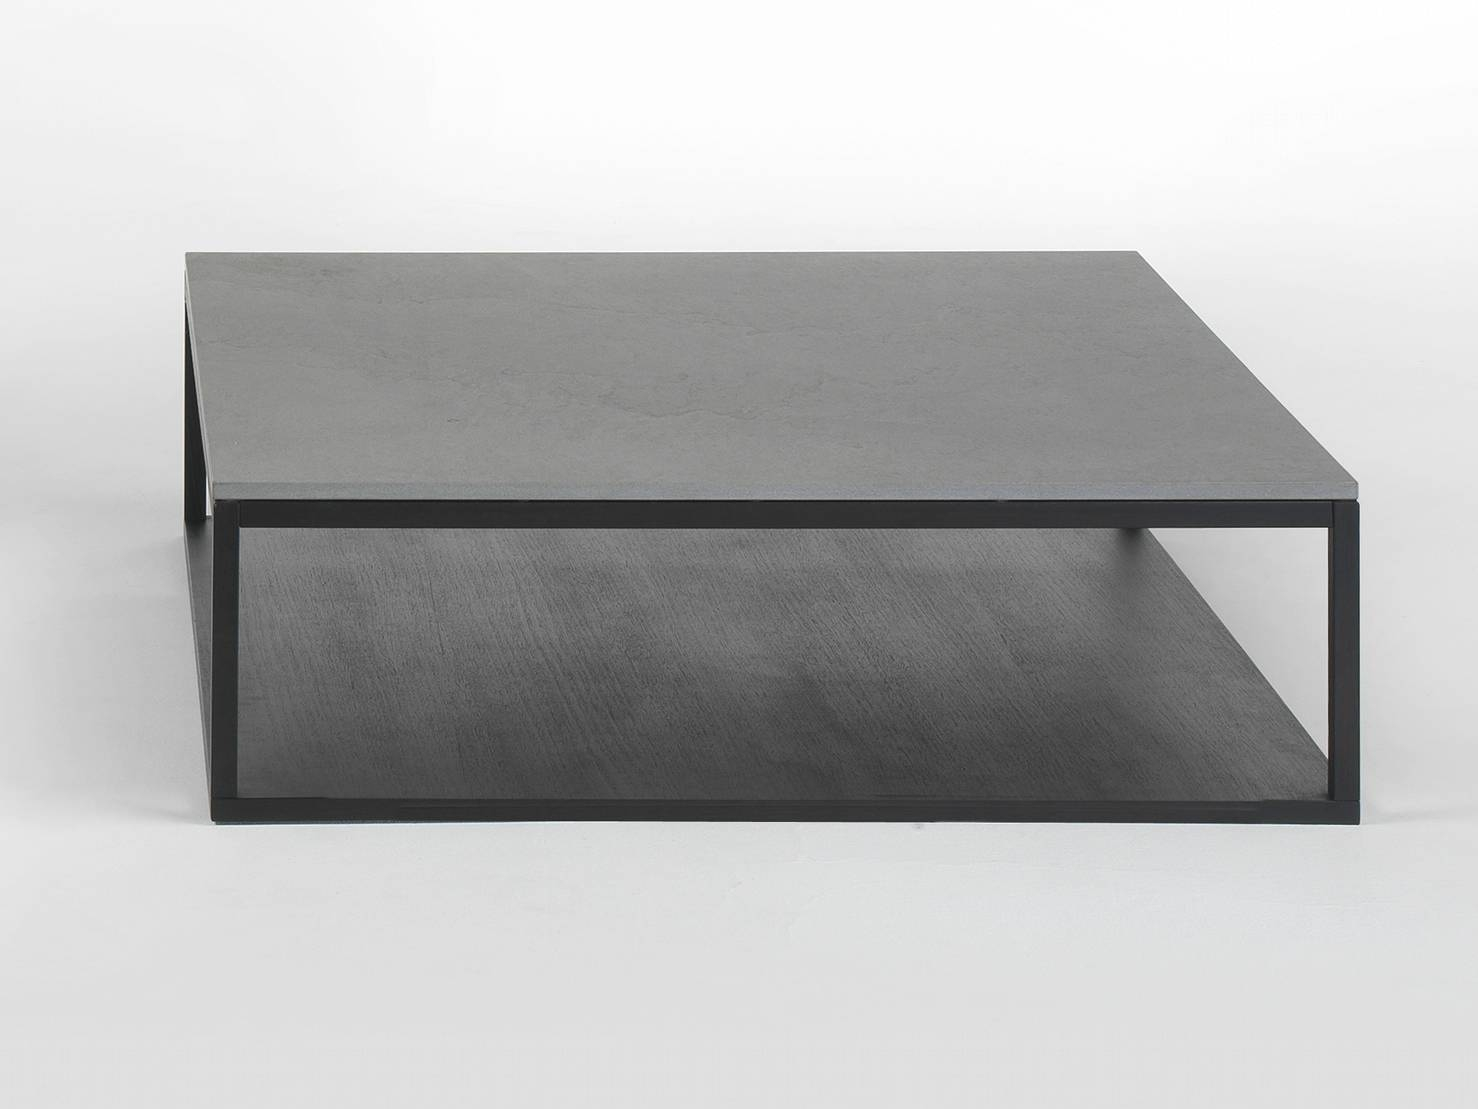 Low Black Square Coffee Table | Coffee Tables Decoration pertaining to Low Square Coffee Tables (Image 14 of 30)